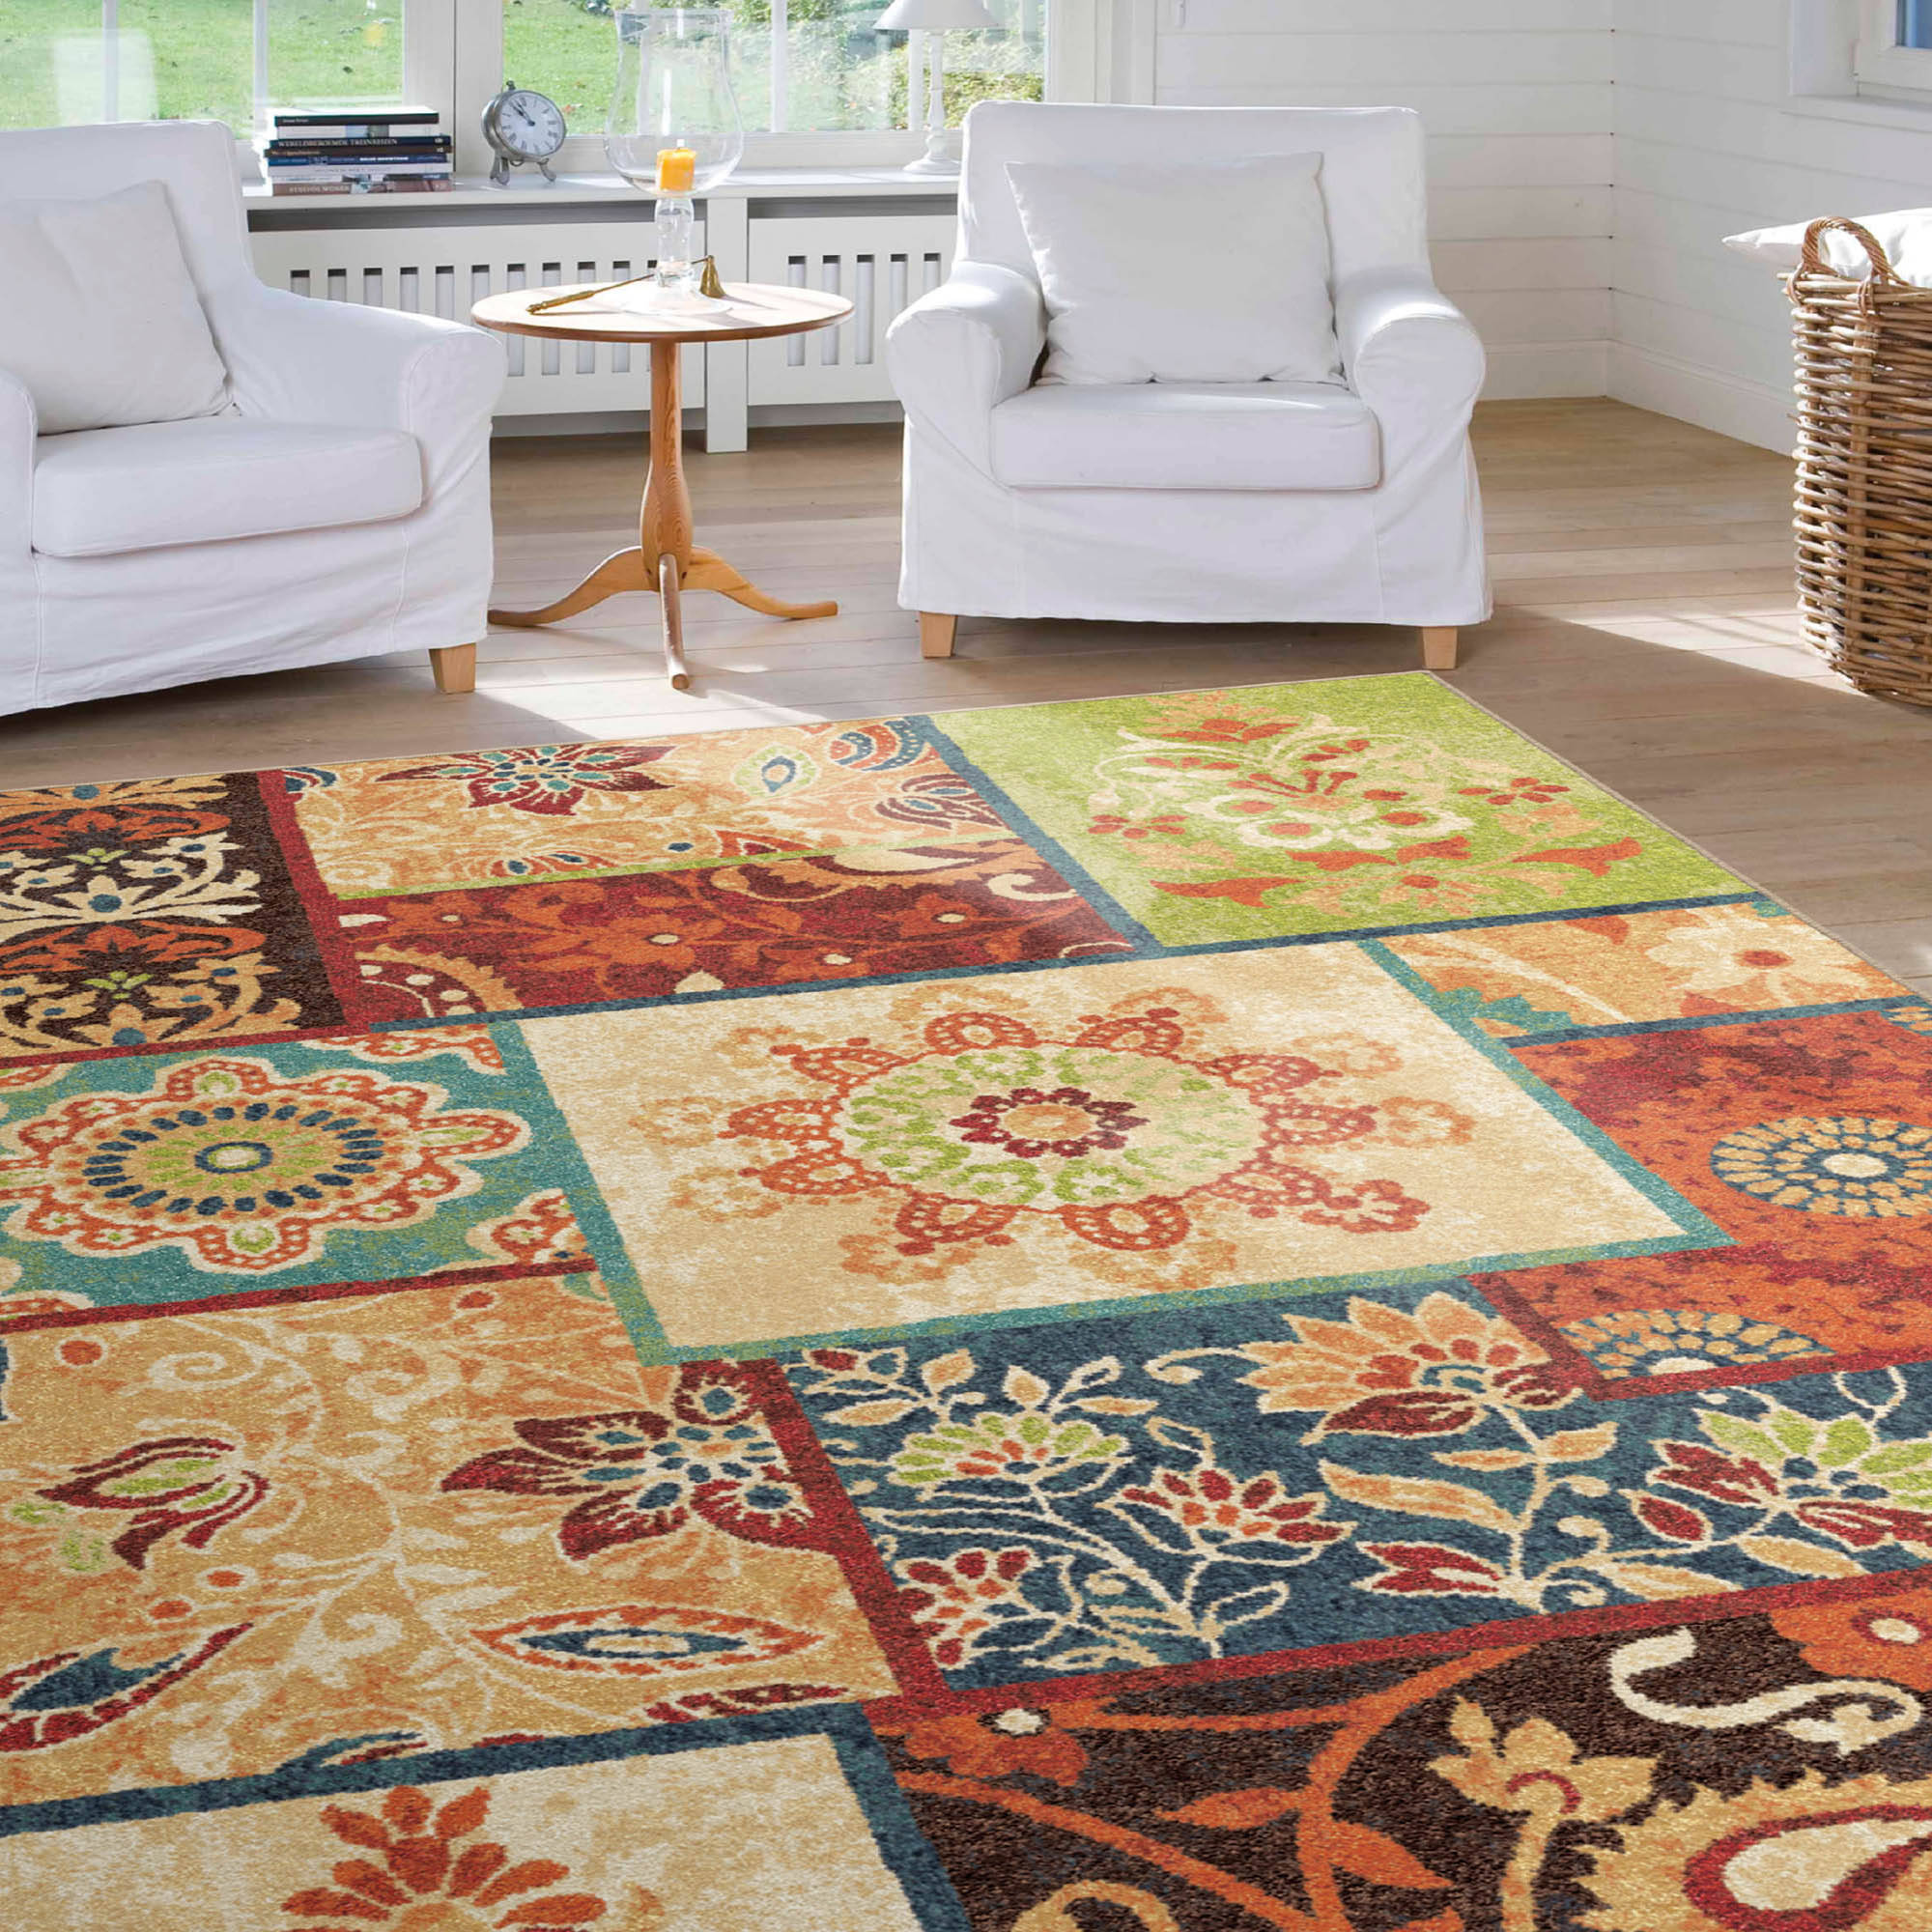 orian rugs patchland multicolored area rug  walmartcom -